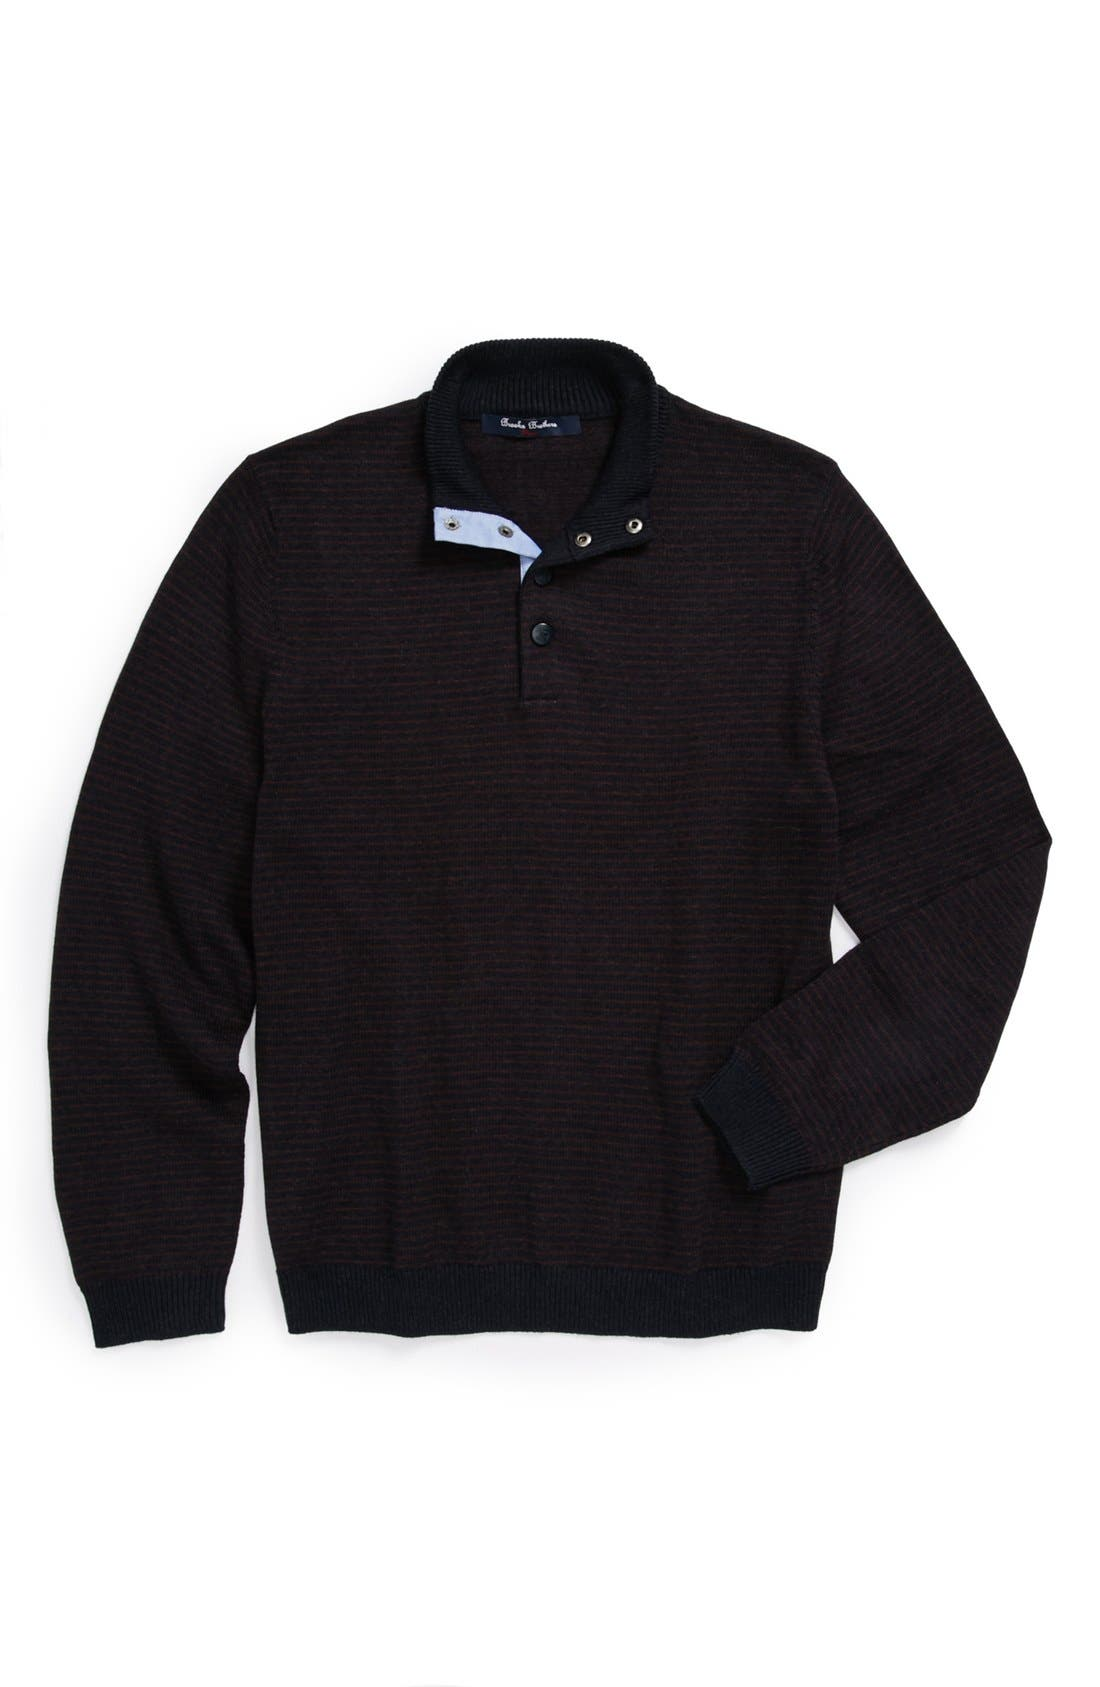 Alternate Image 1 Selected - Brooks Brothers Mock Neck Sweater (Big Boys)